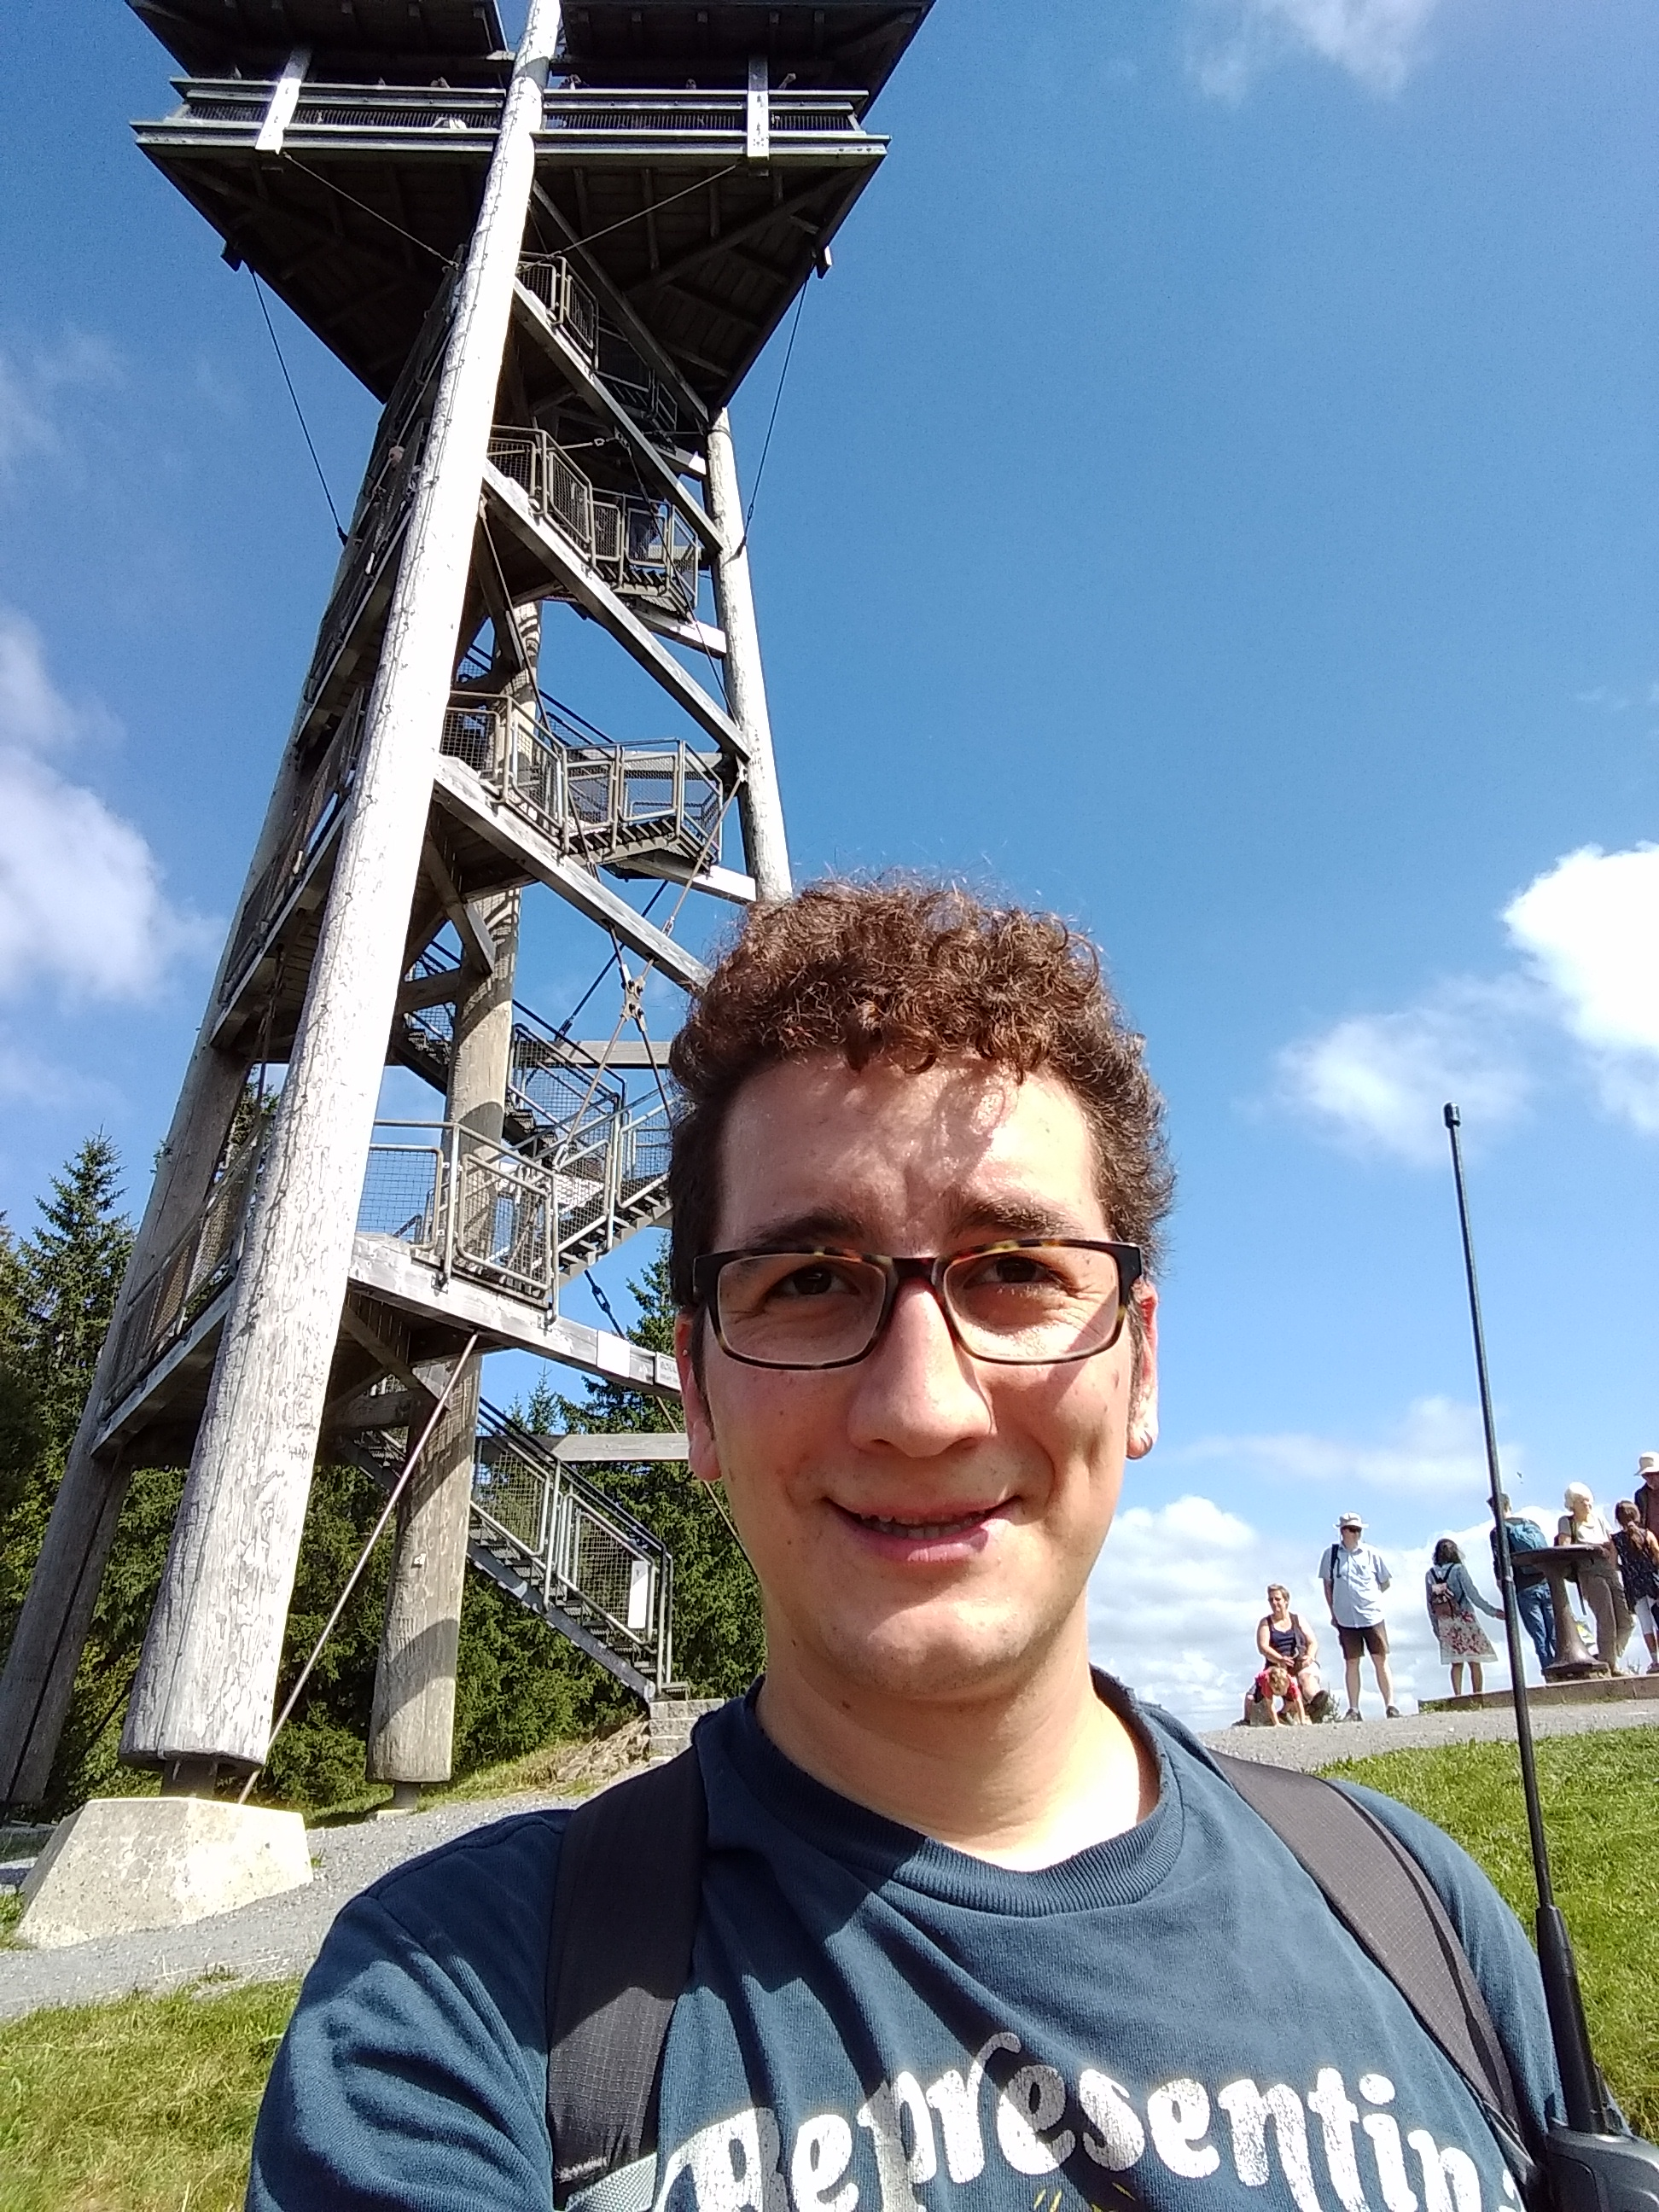 Selfie on Schauinsland with the observation tower visible in the background.